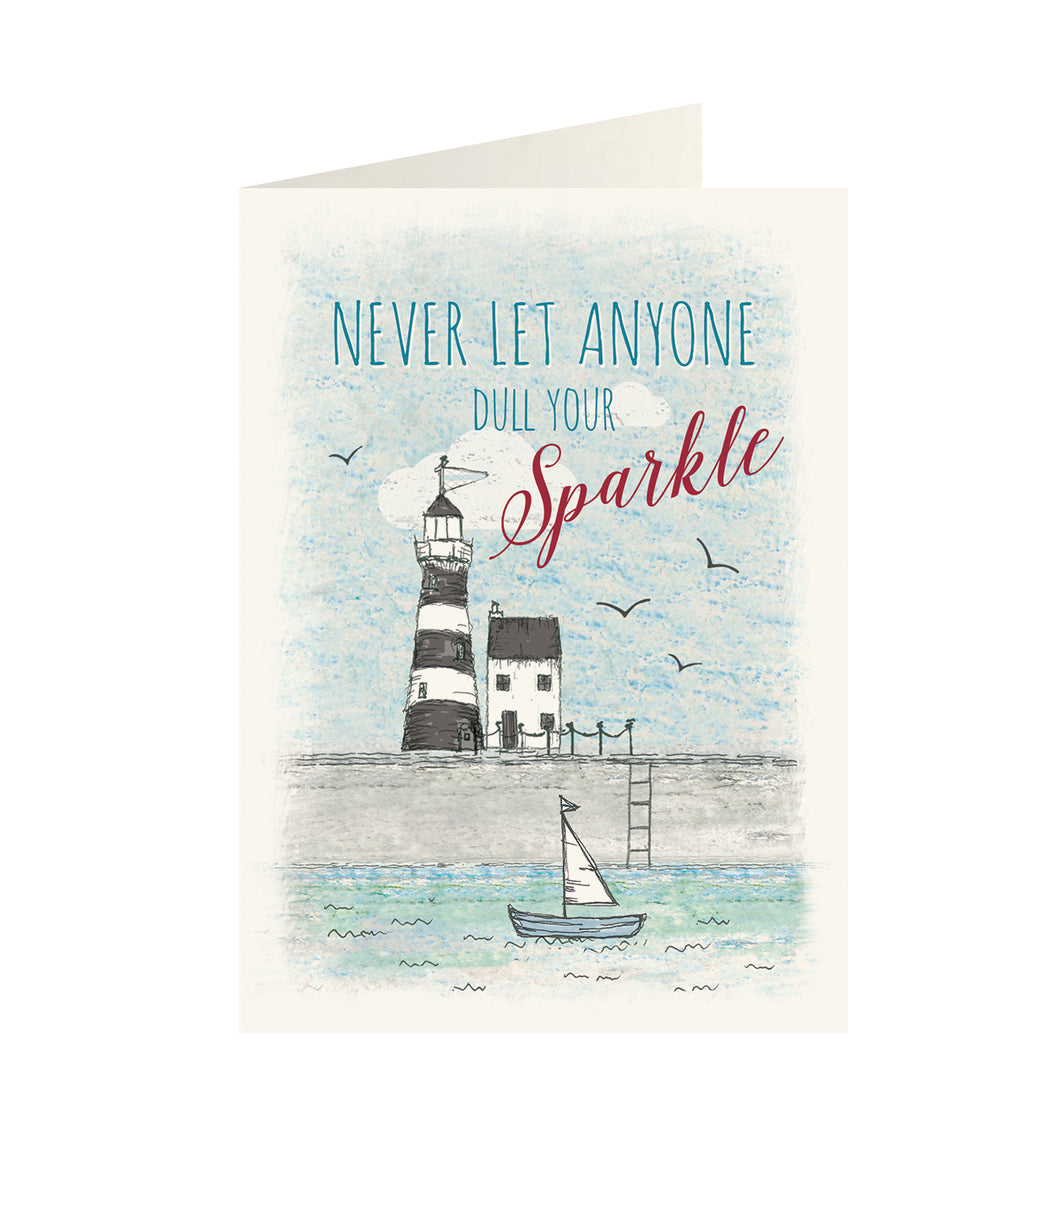 East Of India - Wonderland greeting card - Never let anyone dull your sparkle